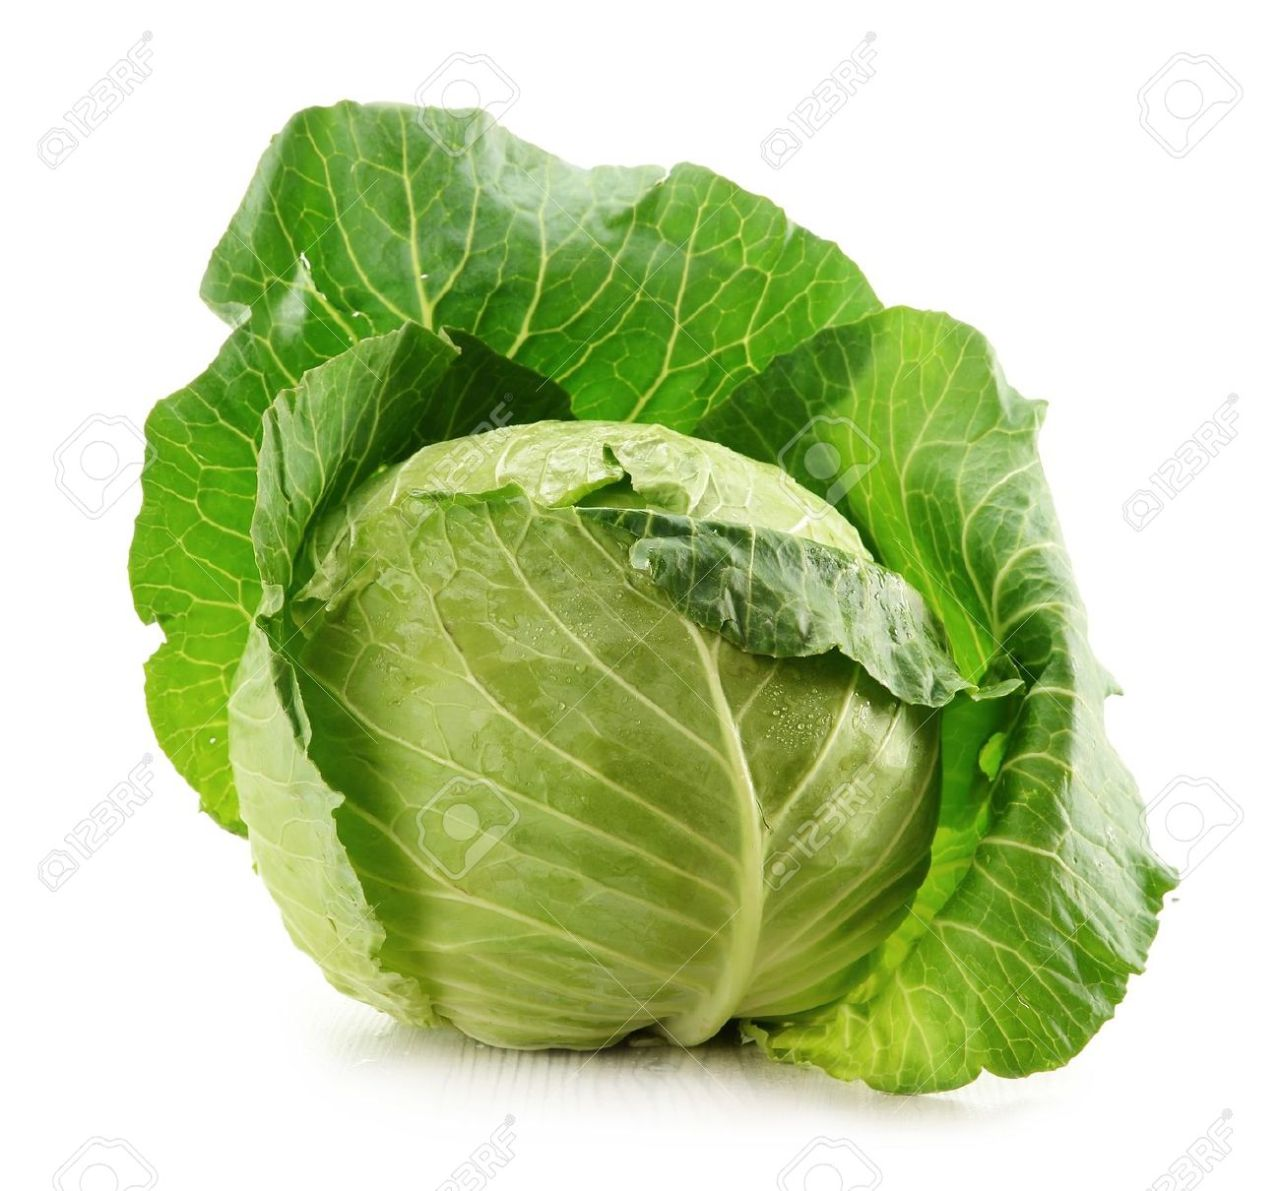 Cabbage Juice Cures 100 of Diseases! –  http://ift.tt/1iPPSHZ